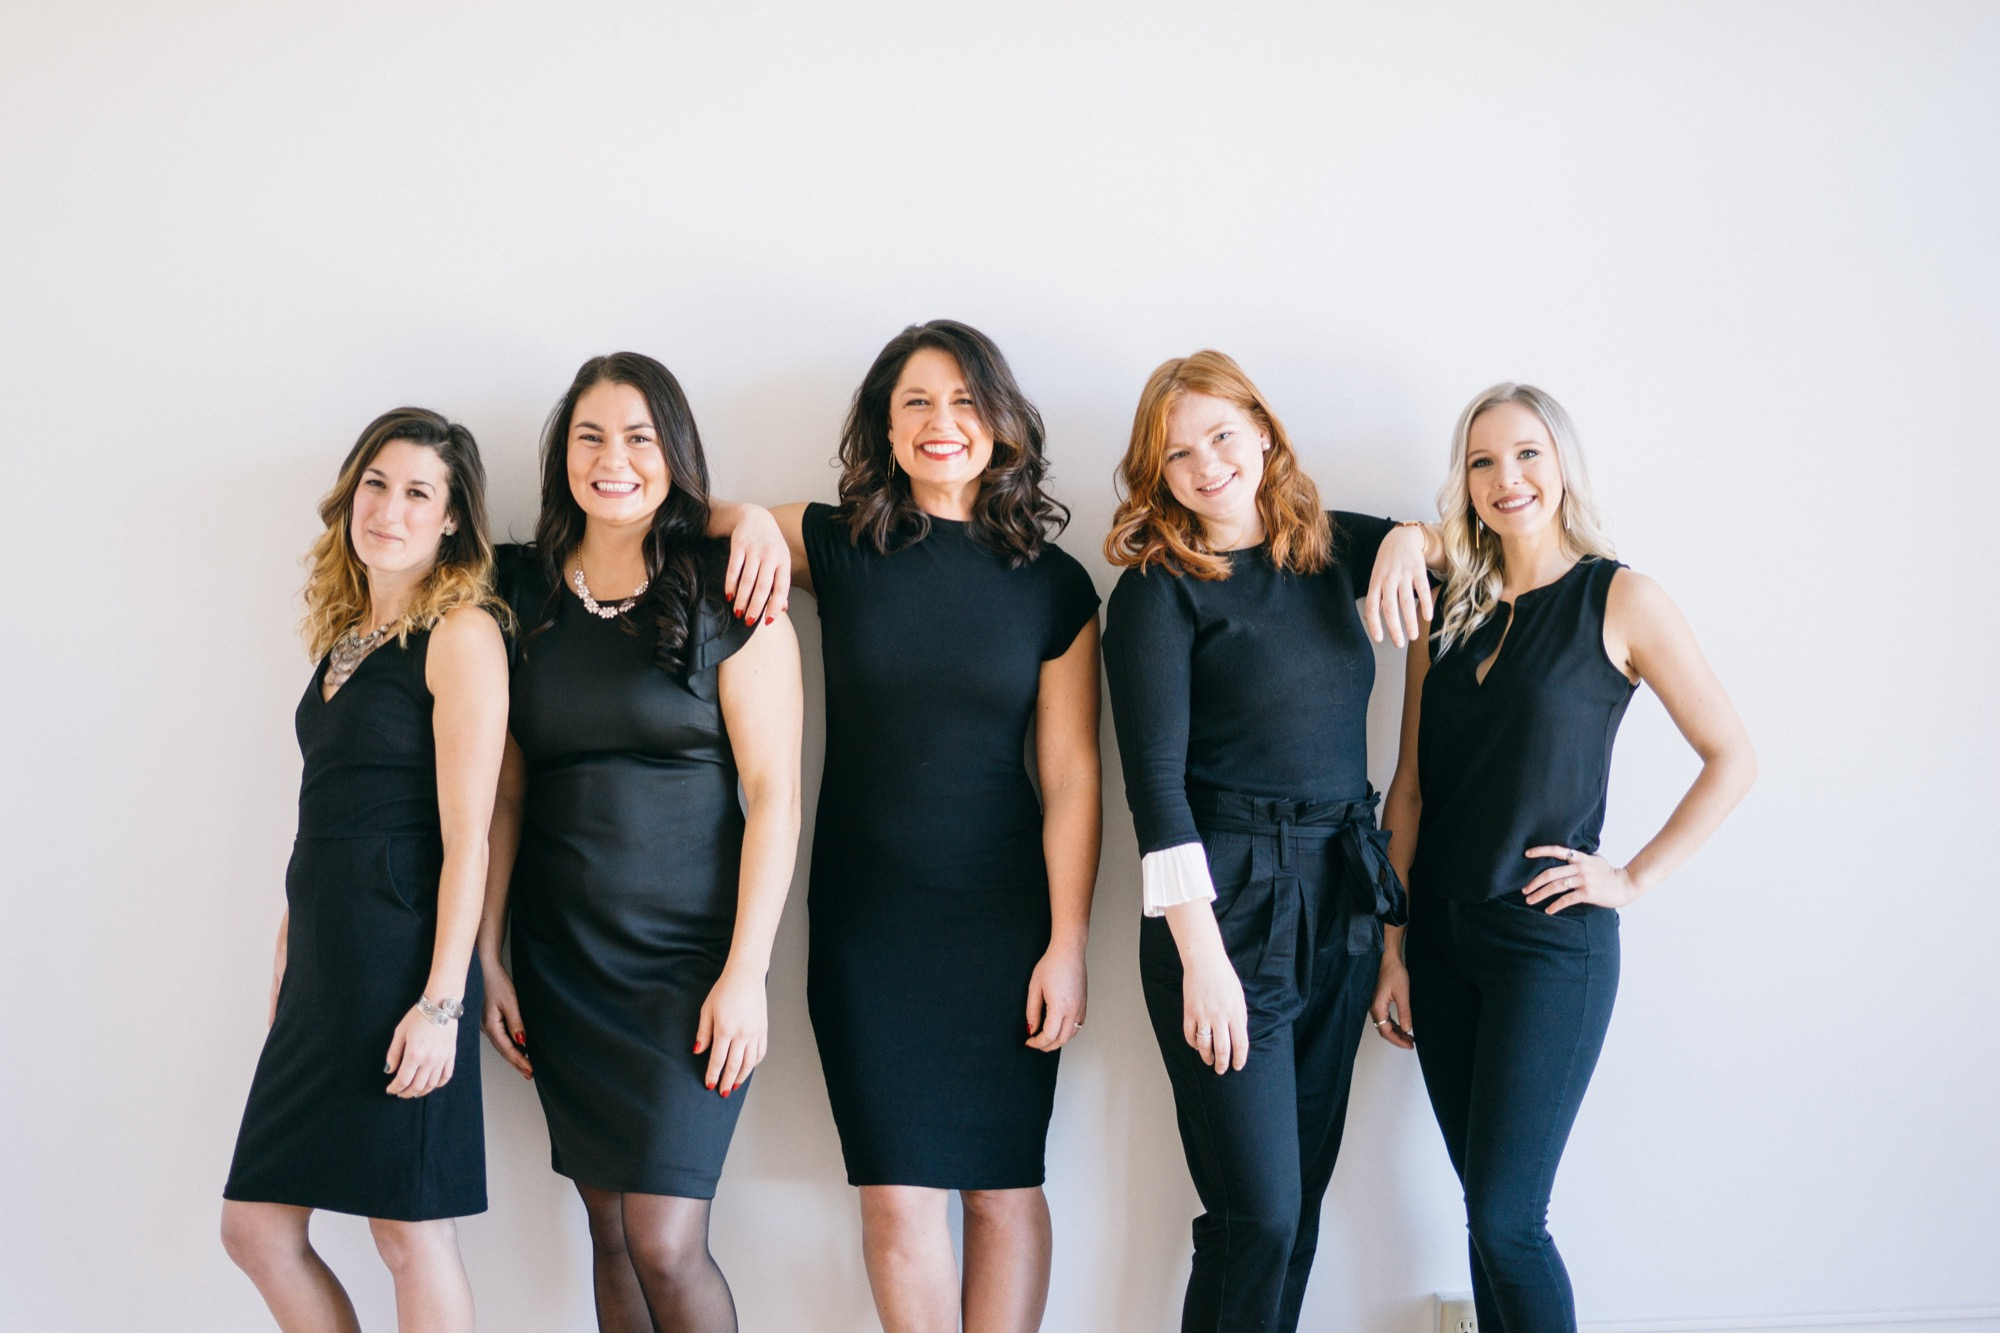 MEET THE SHE TEAM